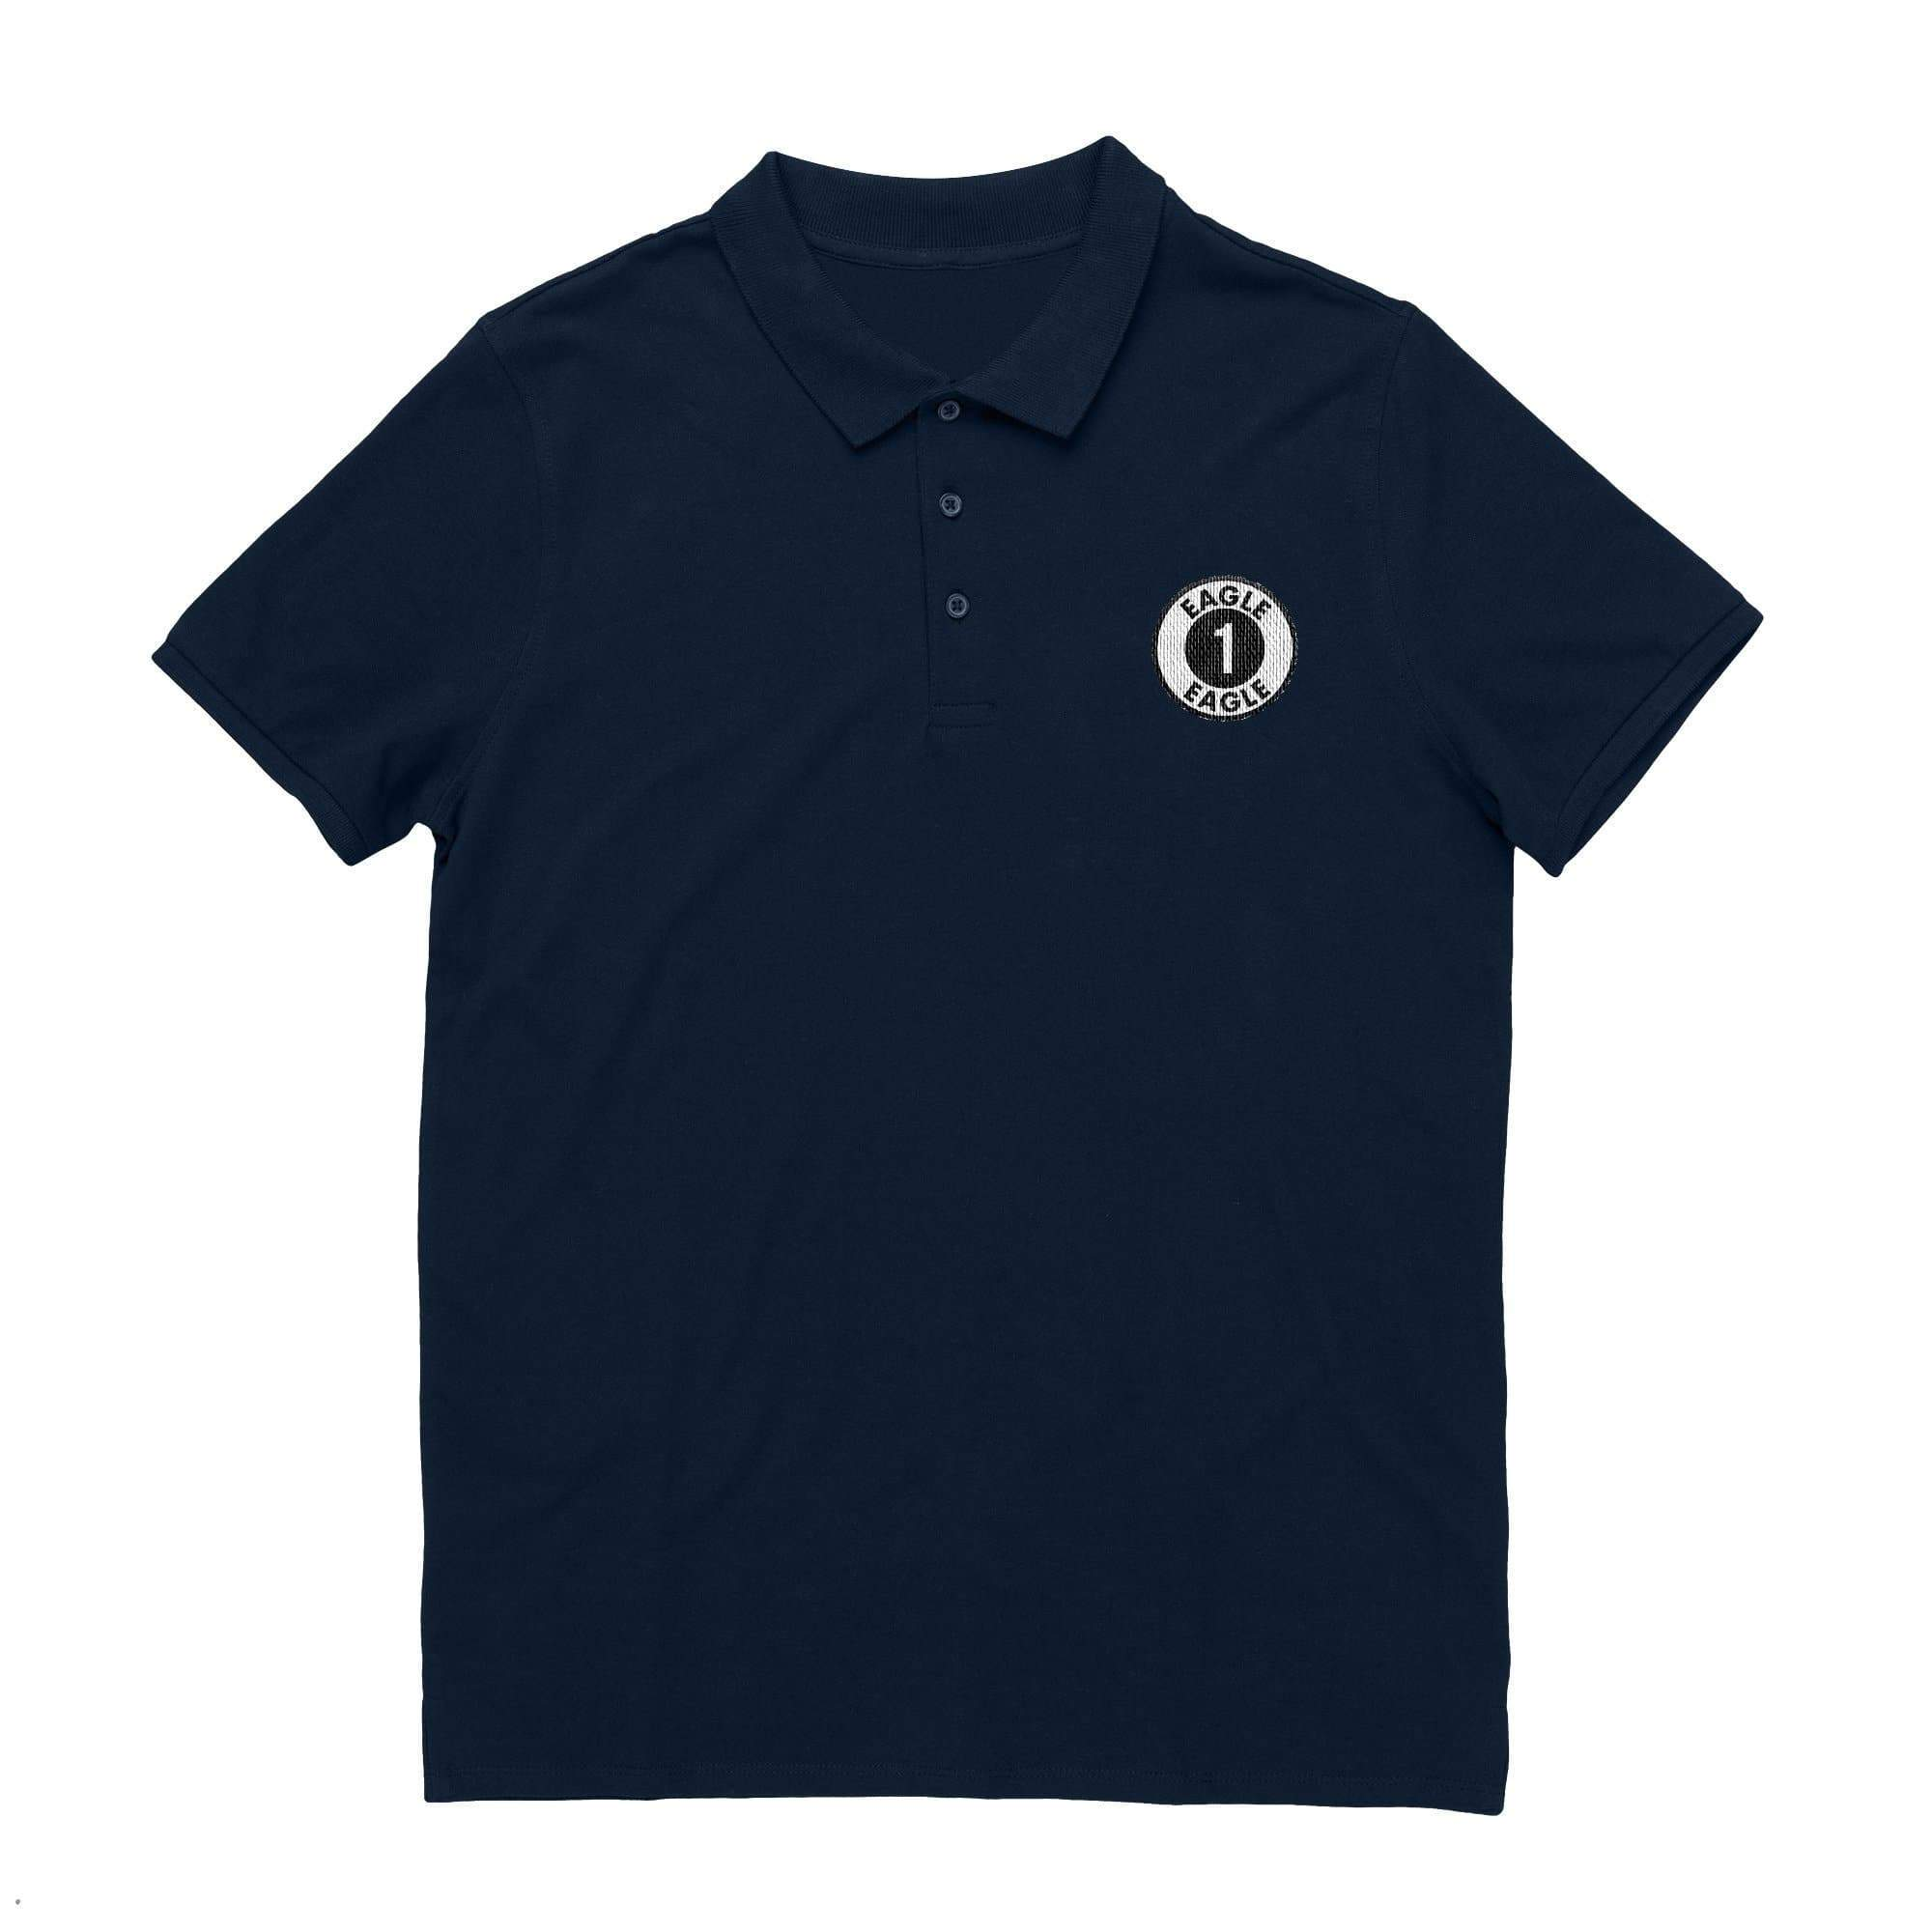 Eagle One Logo Men's Polo Shirt - The Gerry Anderson Store